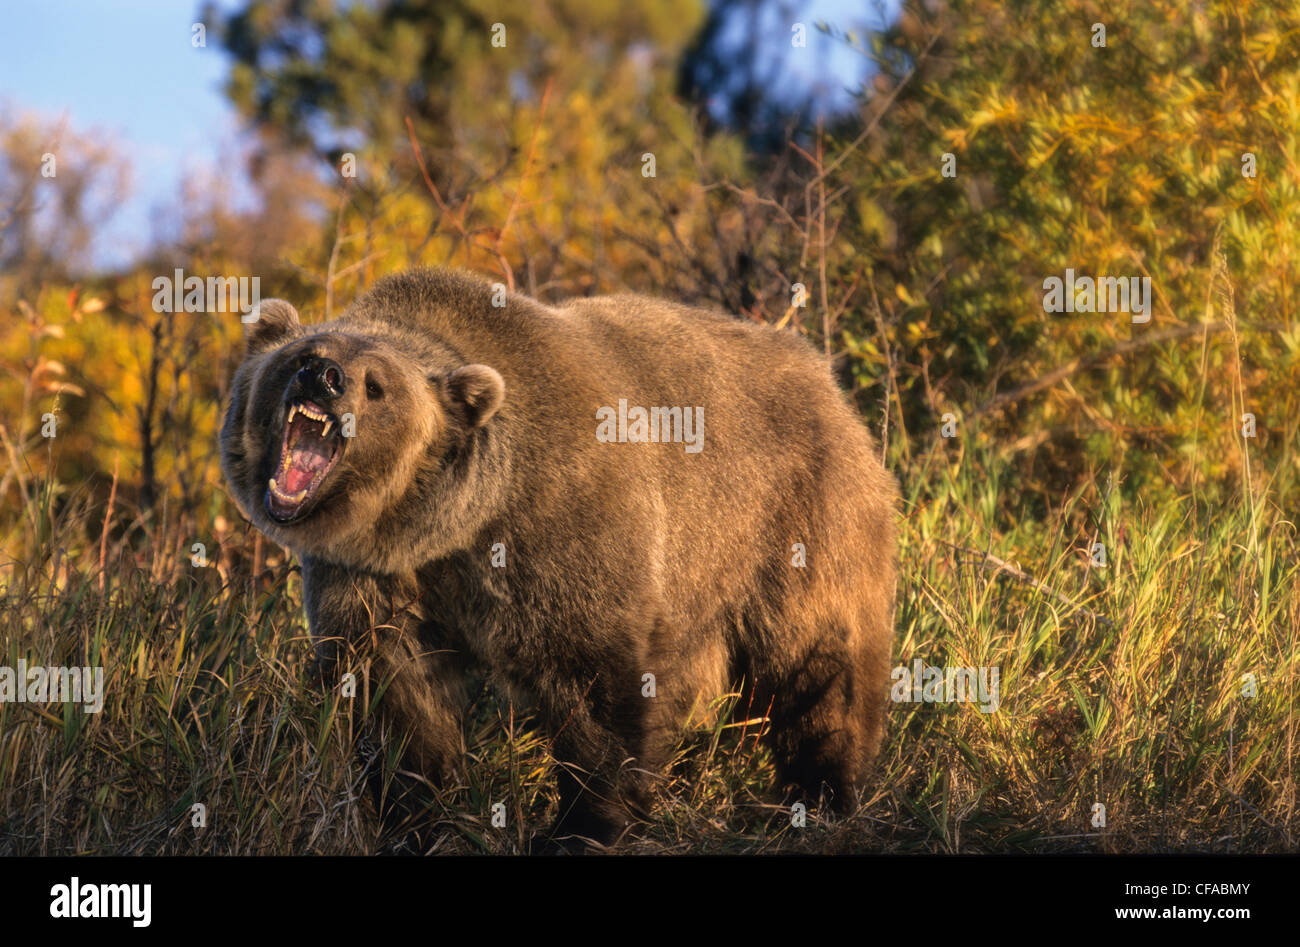 Grizzly Bear (Ursus arctos horribilis) roars in a clearing, Montana, USA. - Stock Image